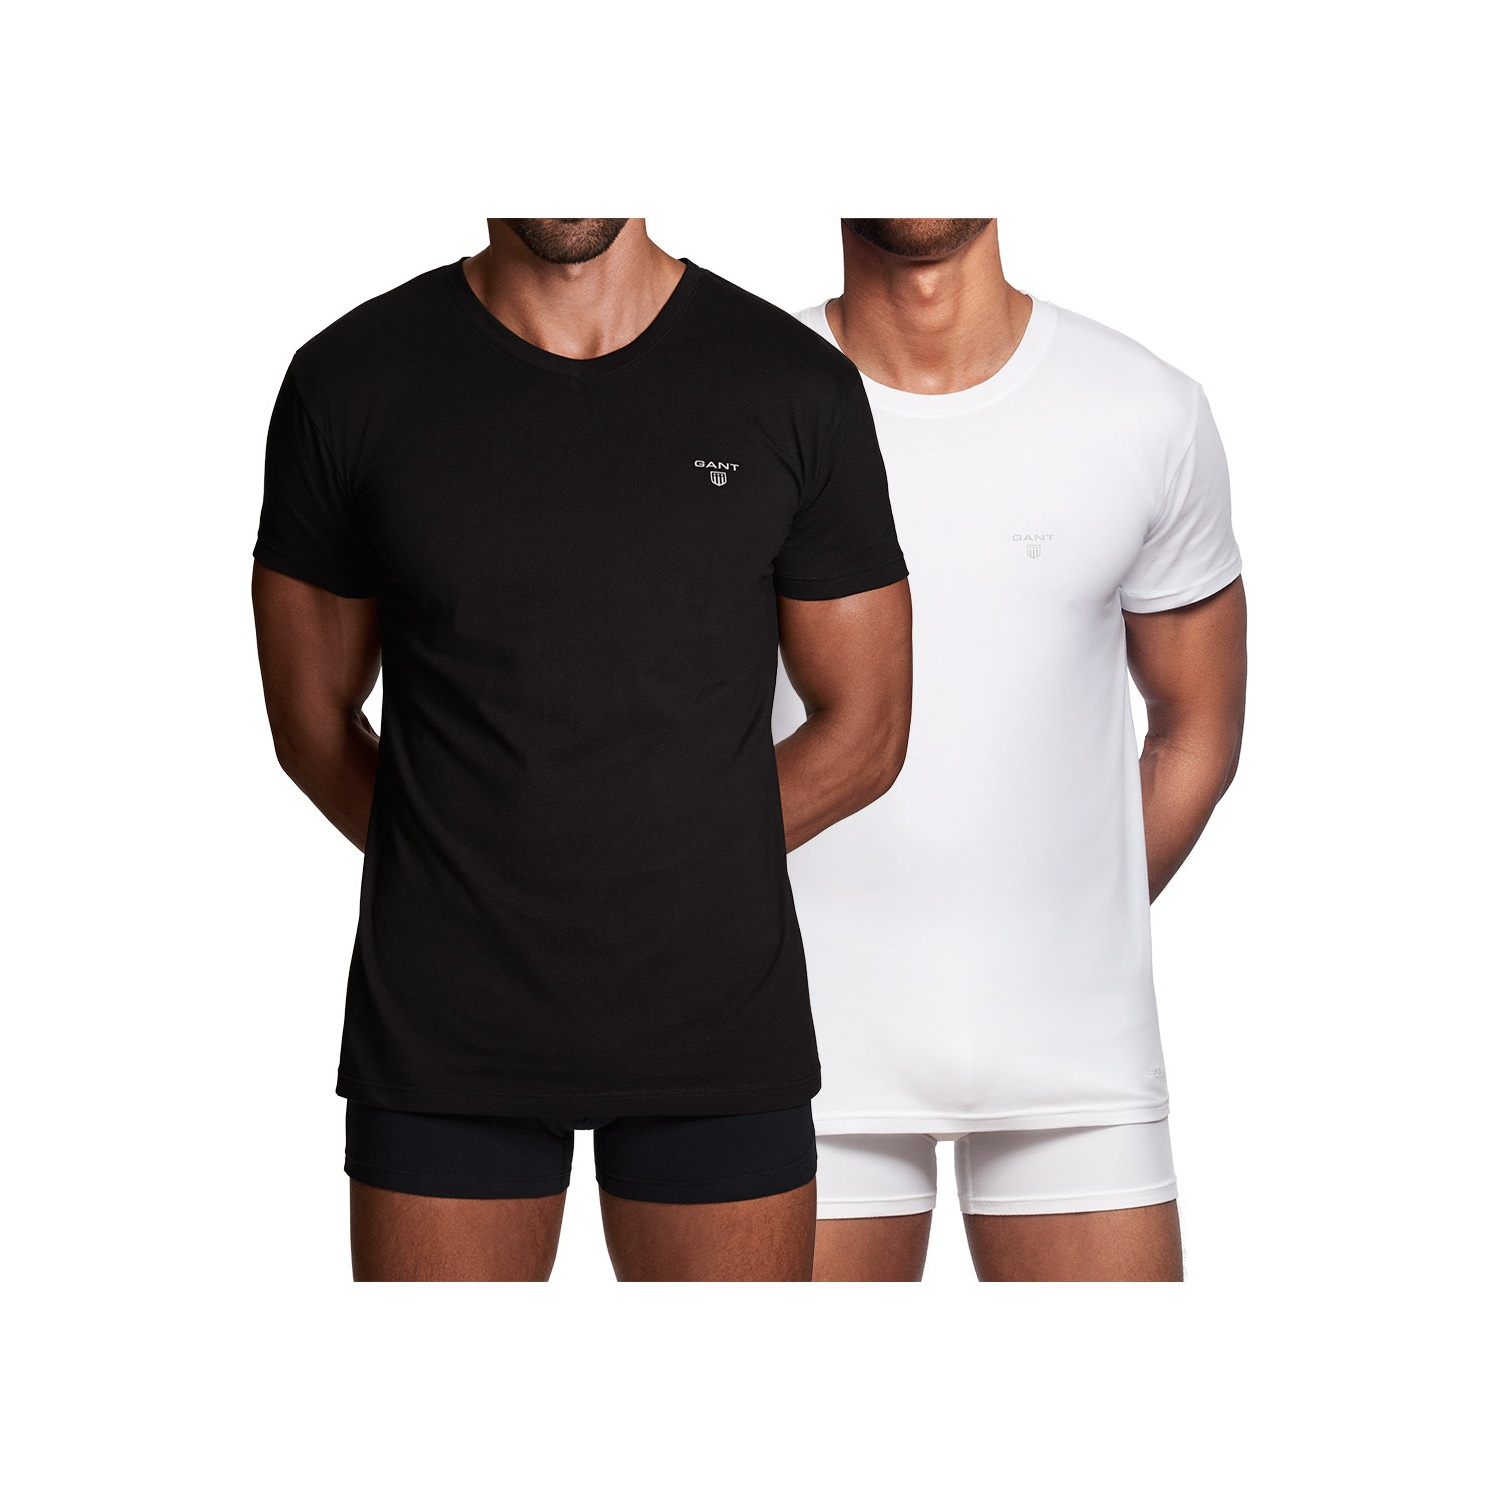 Gant GANT 2-Pack Cotton T-Shirts